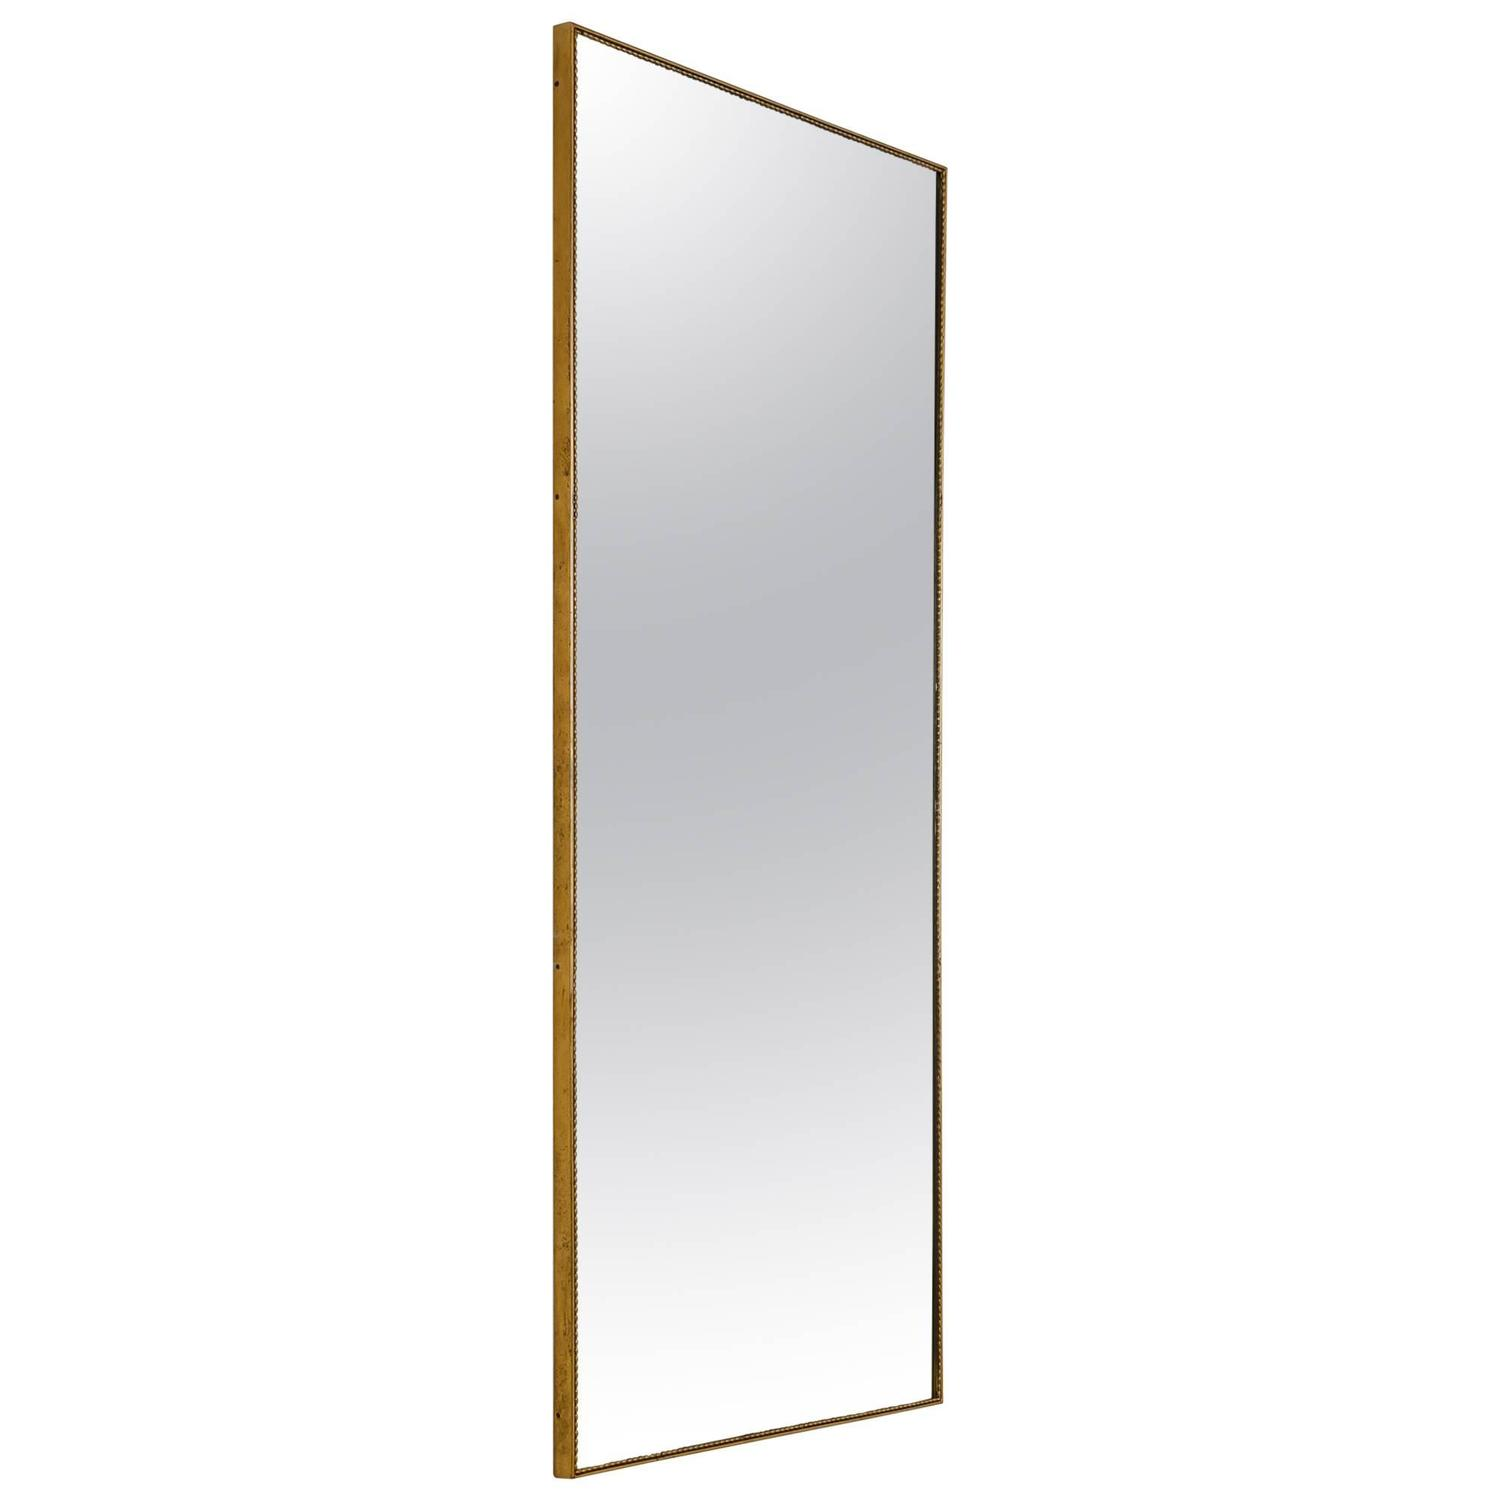 Mirrored framed mirror small multi faceted wall mirror for Large framed wall mirrors